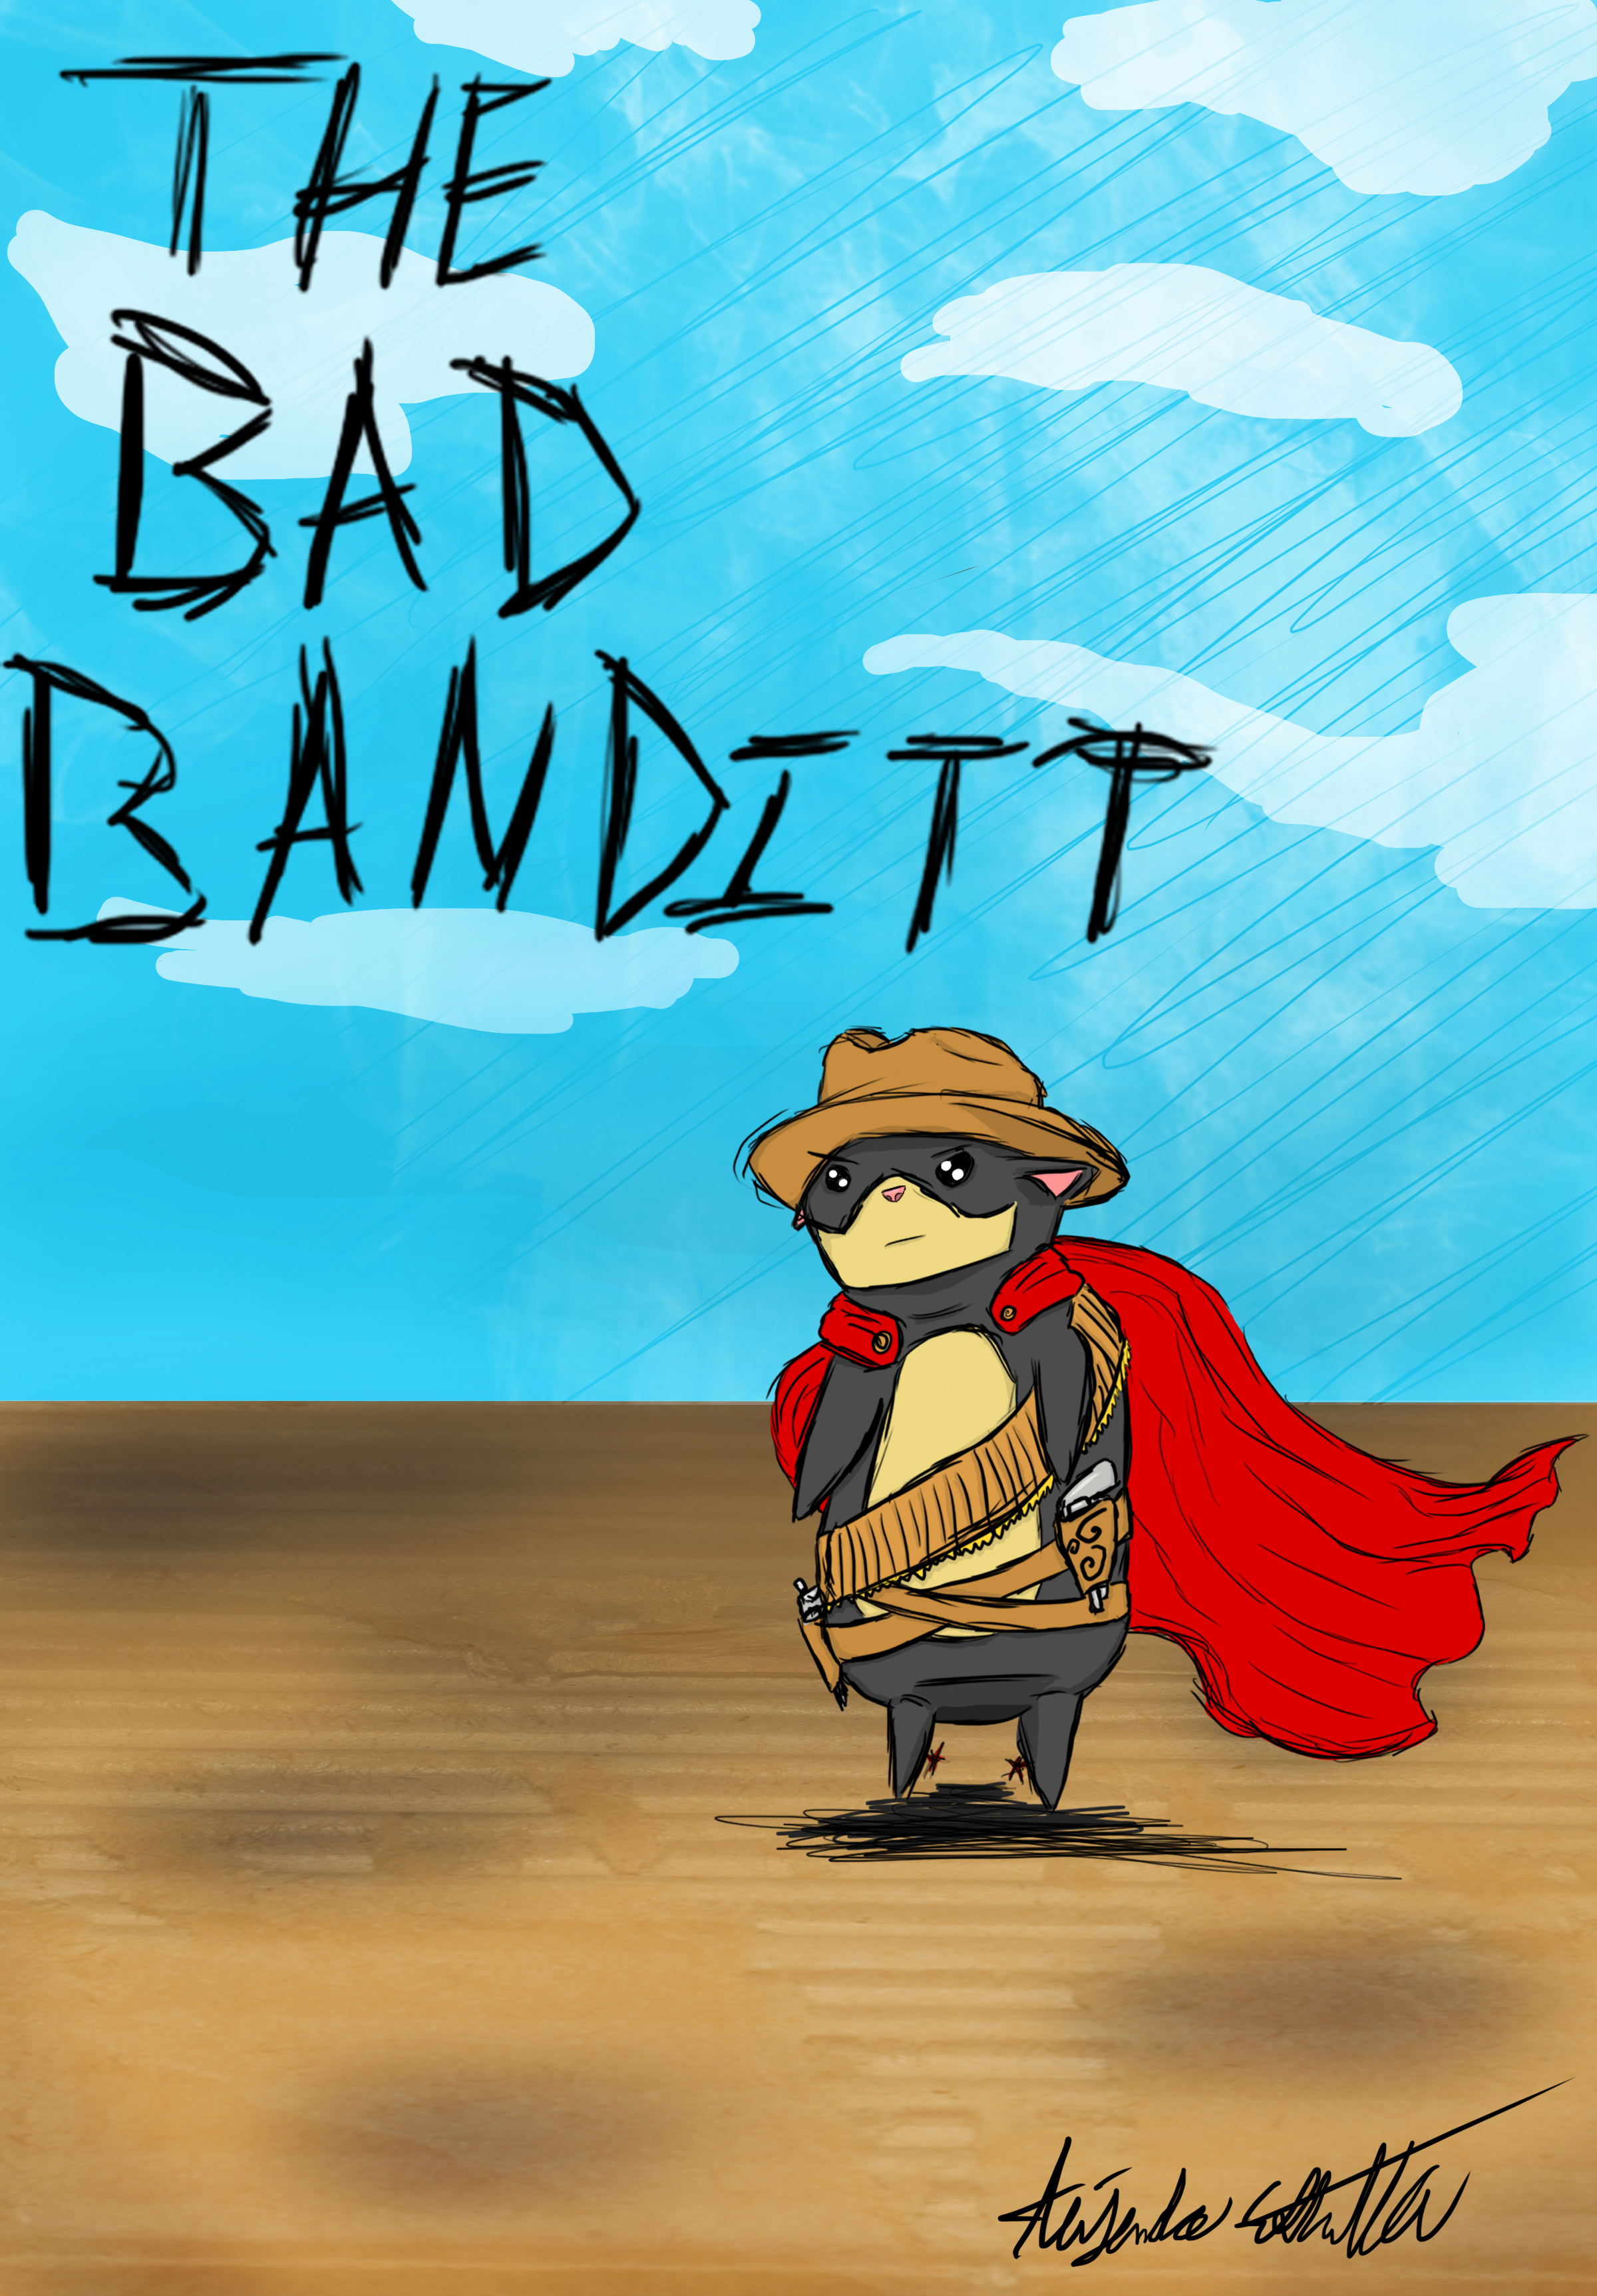 The Bad Banditt